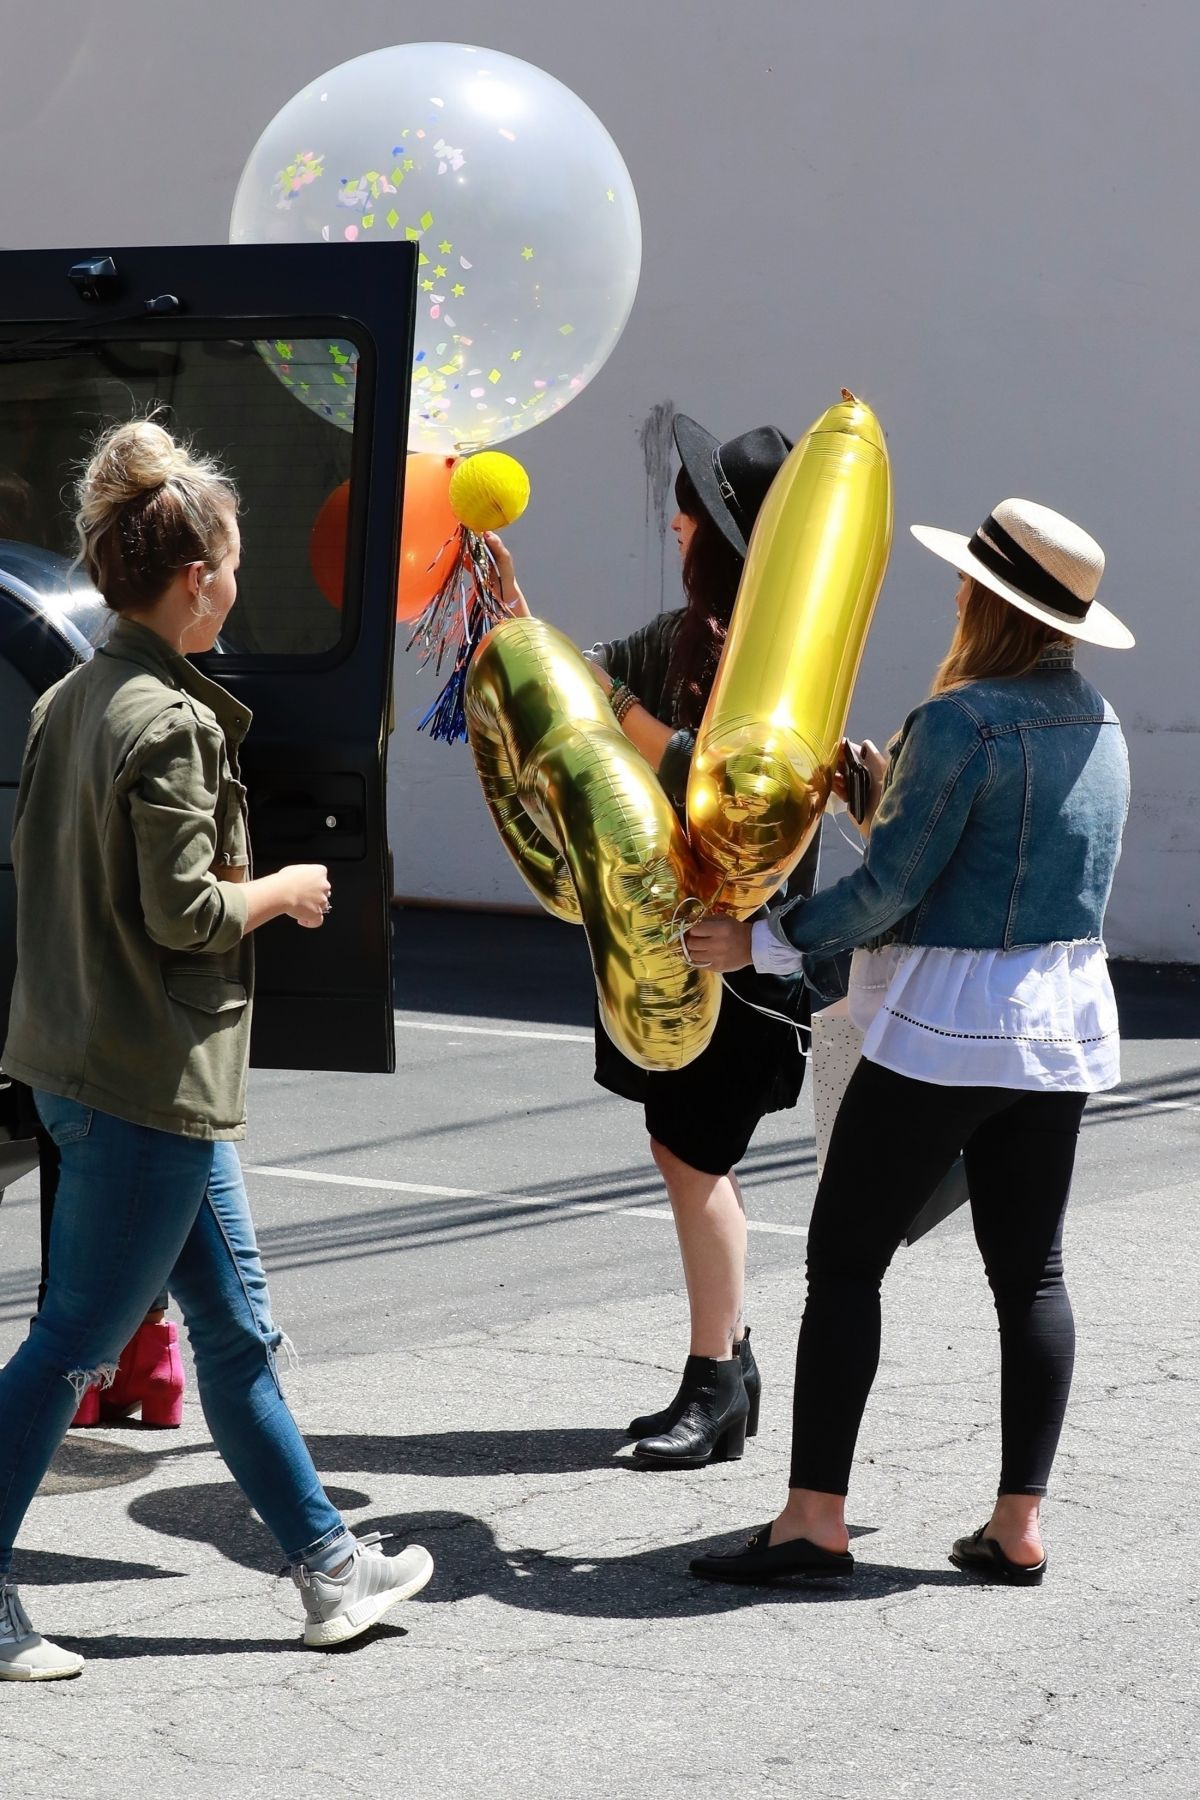 Hilary Duff Picking Up Some Gigantic Party Balloons For A Friend